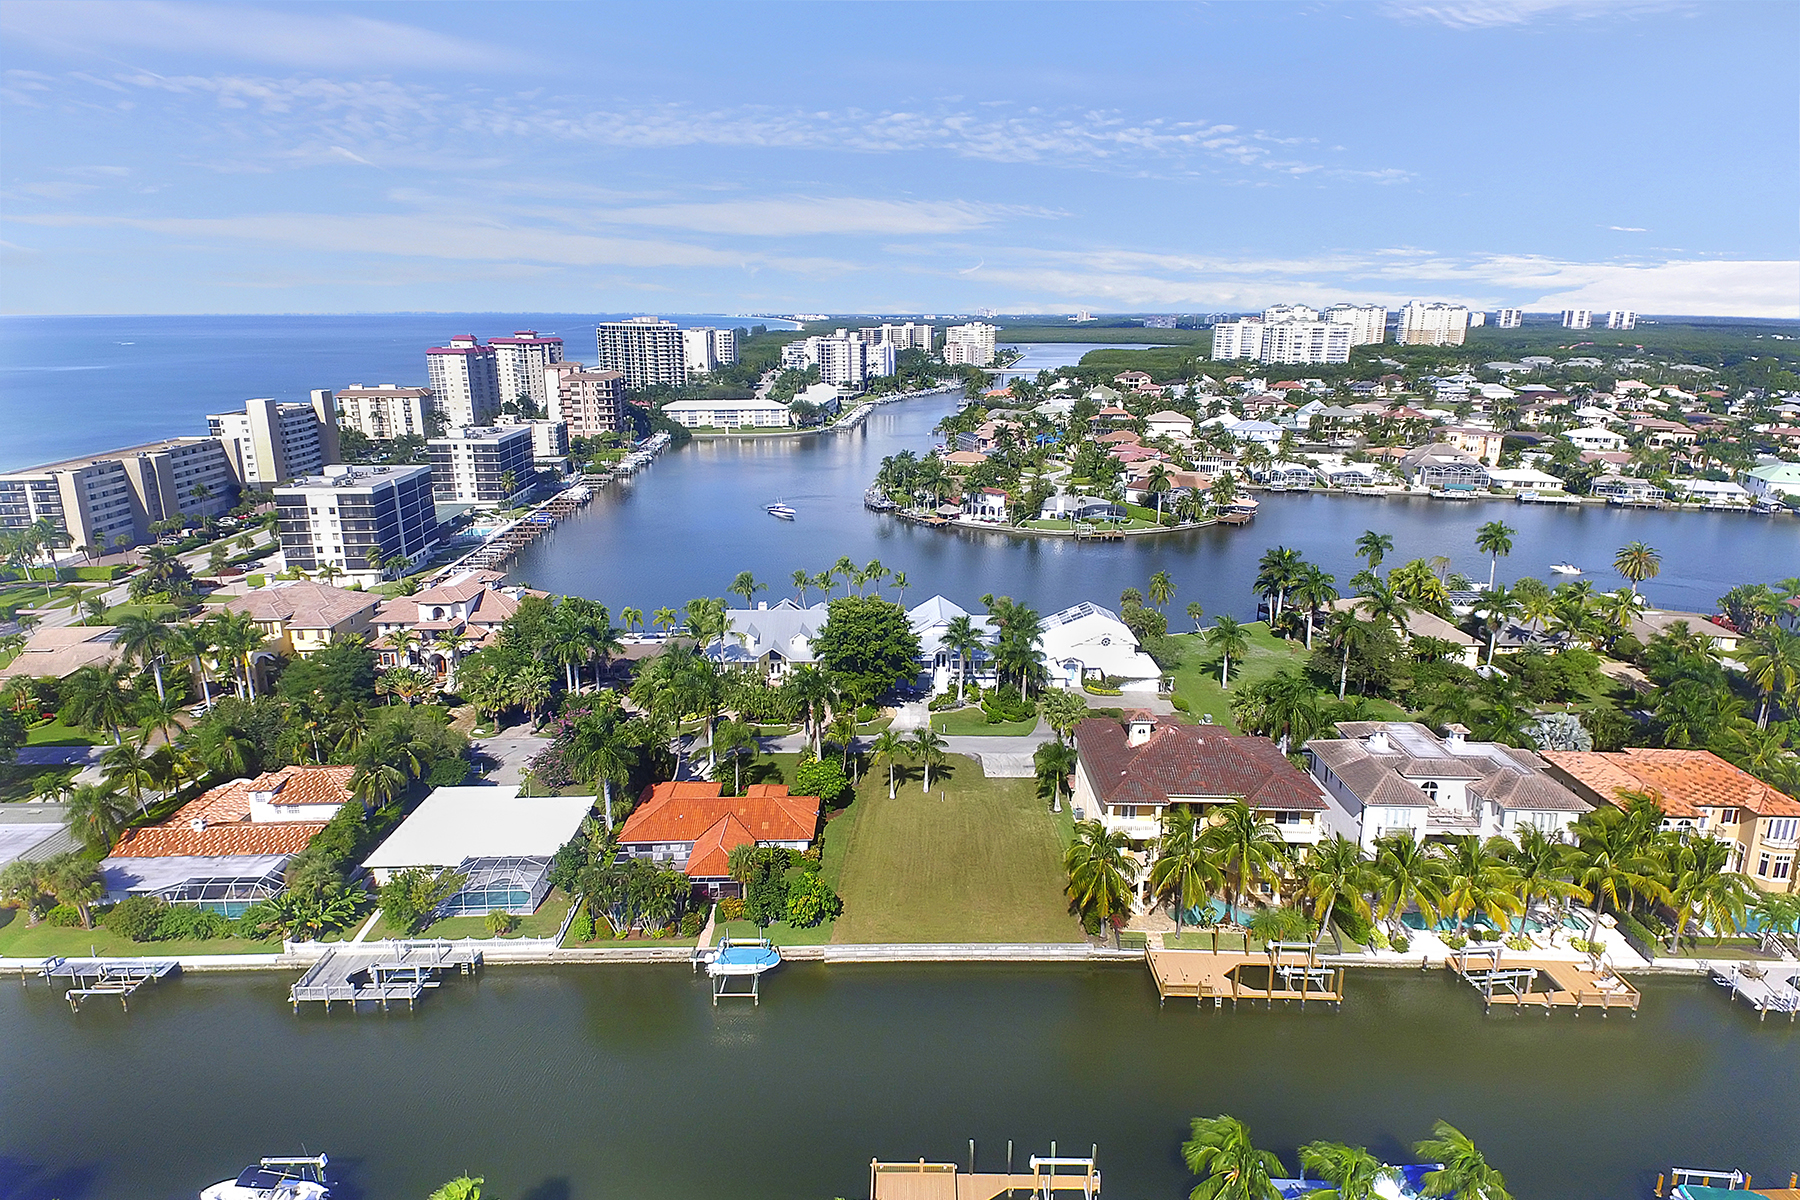 Land for Sale at VANDERBILT BEACH - CONNERS 148 Seabreeze Ave Naples, Florida, 34108 United States